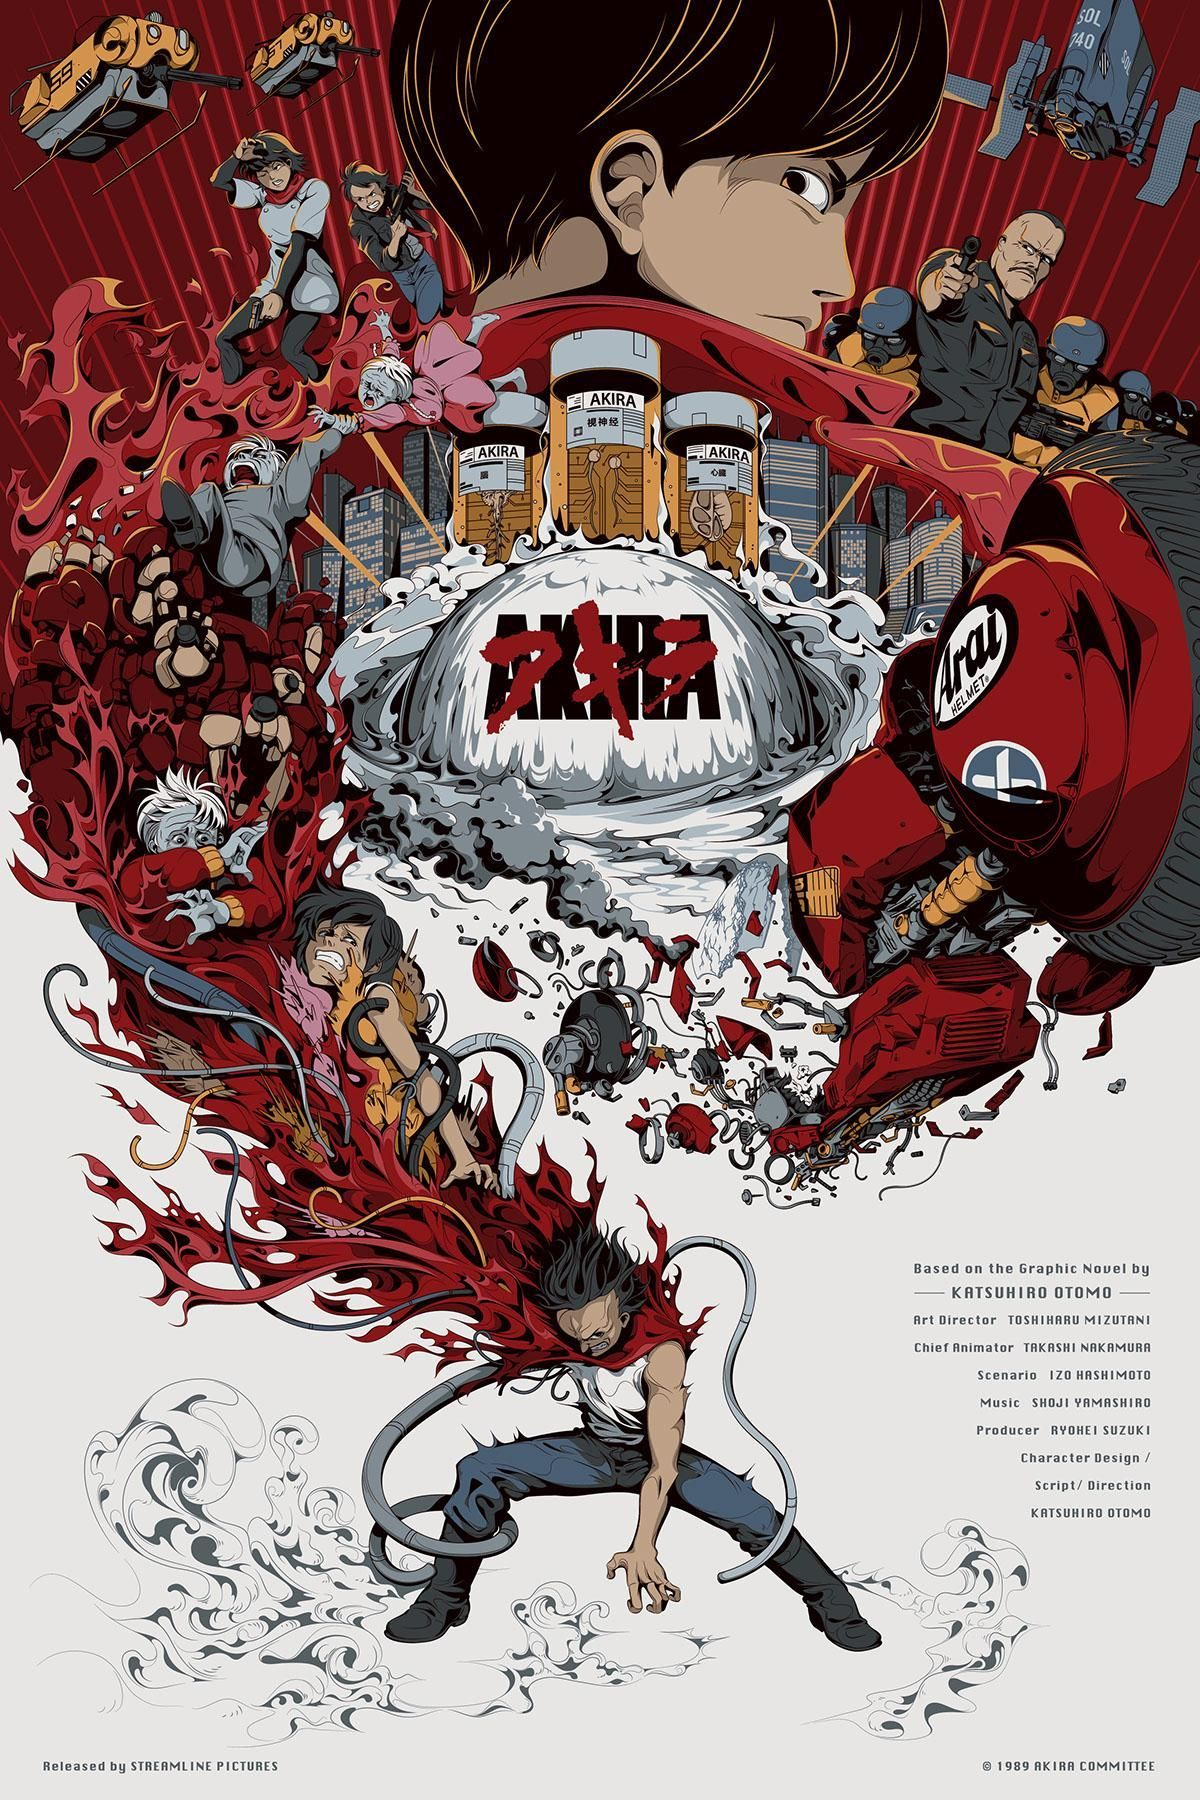 1200x1800 Akira (1988) HD Wallpaper From Gallsource.com | Movie posters ...